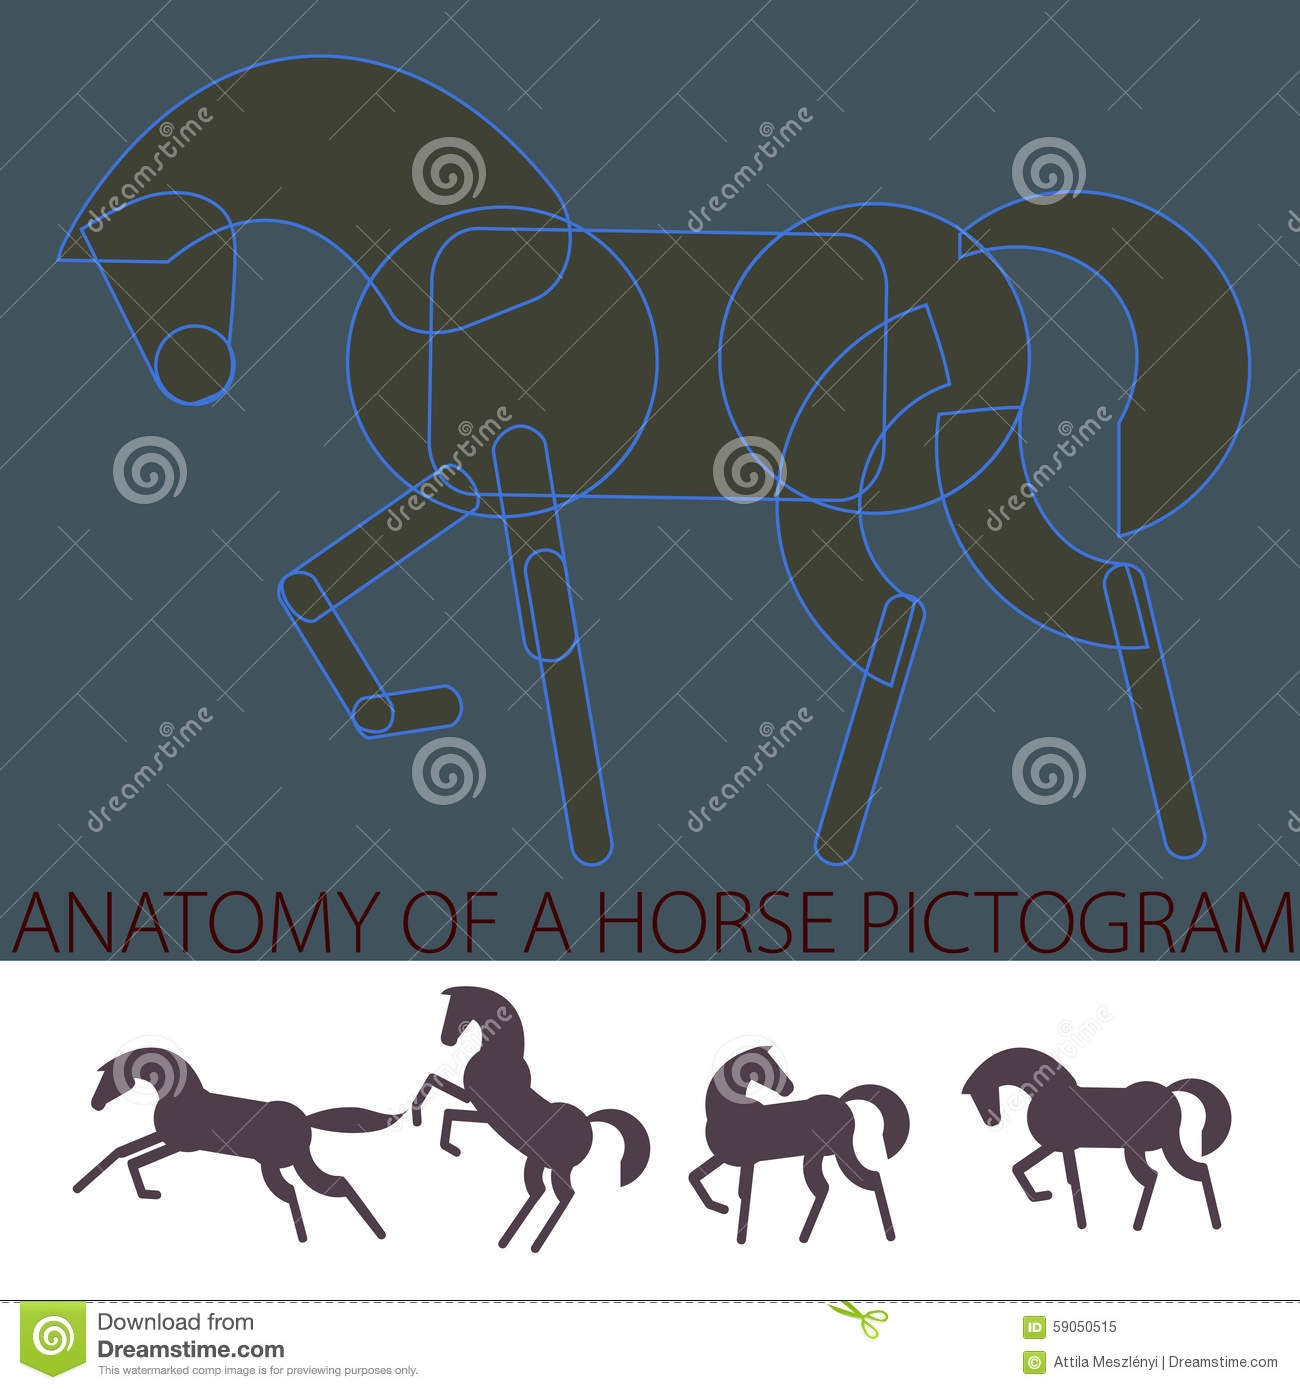 Anatomy Of A Horse Pictogram Stock Vector Illustration Of